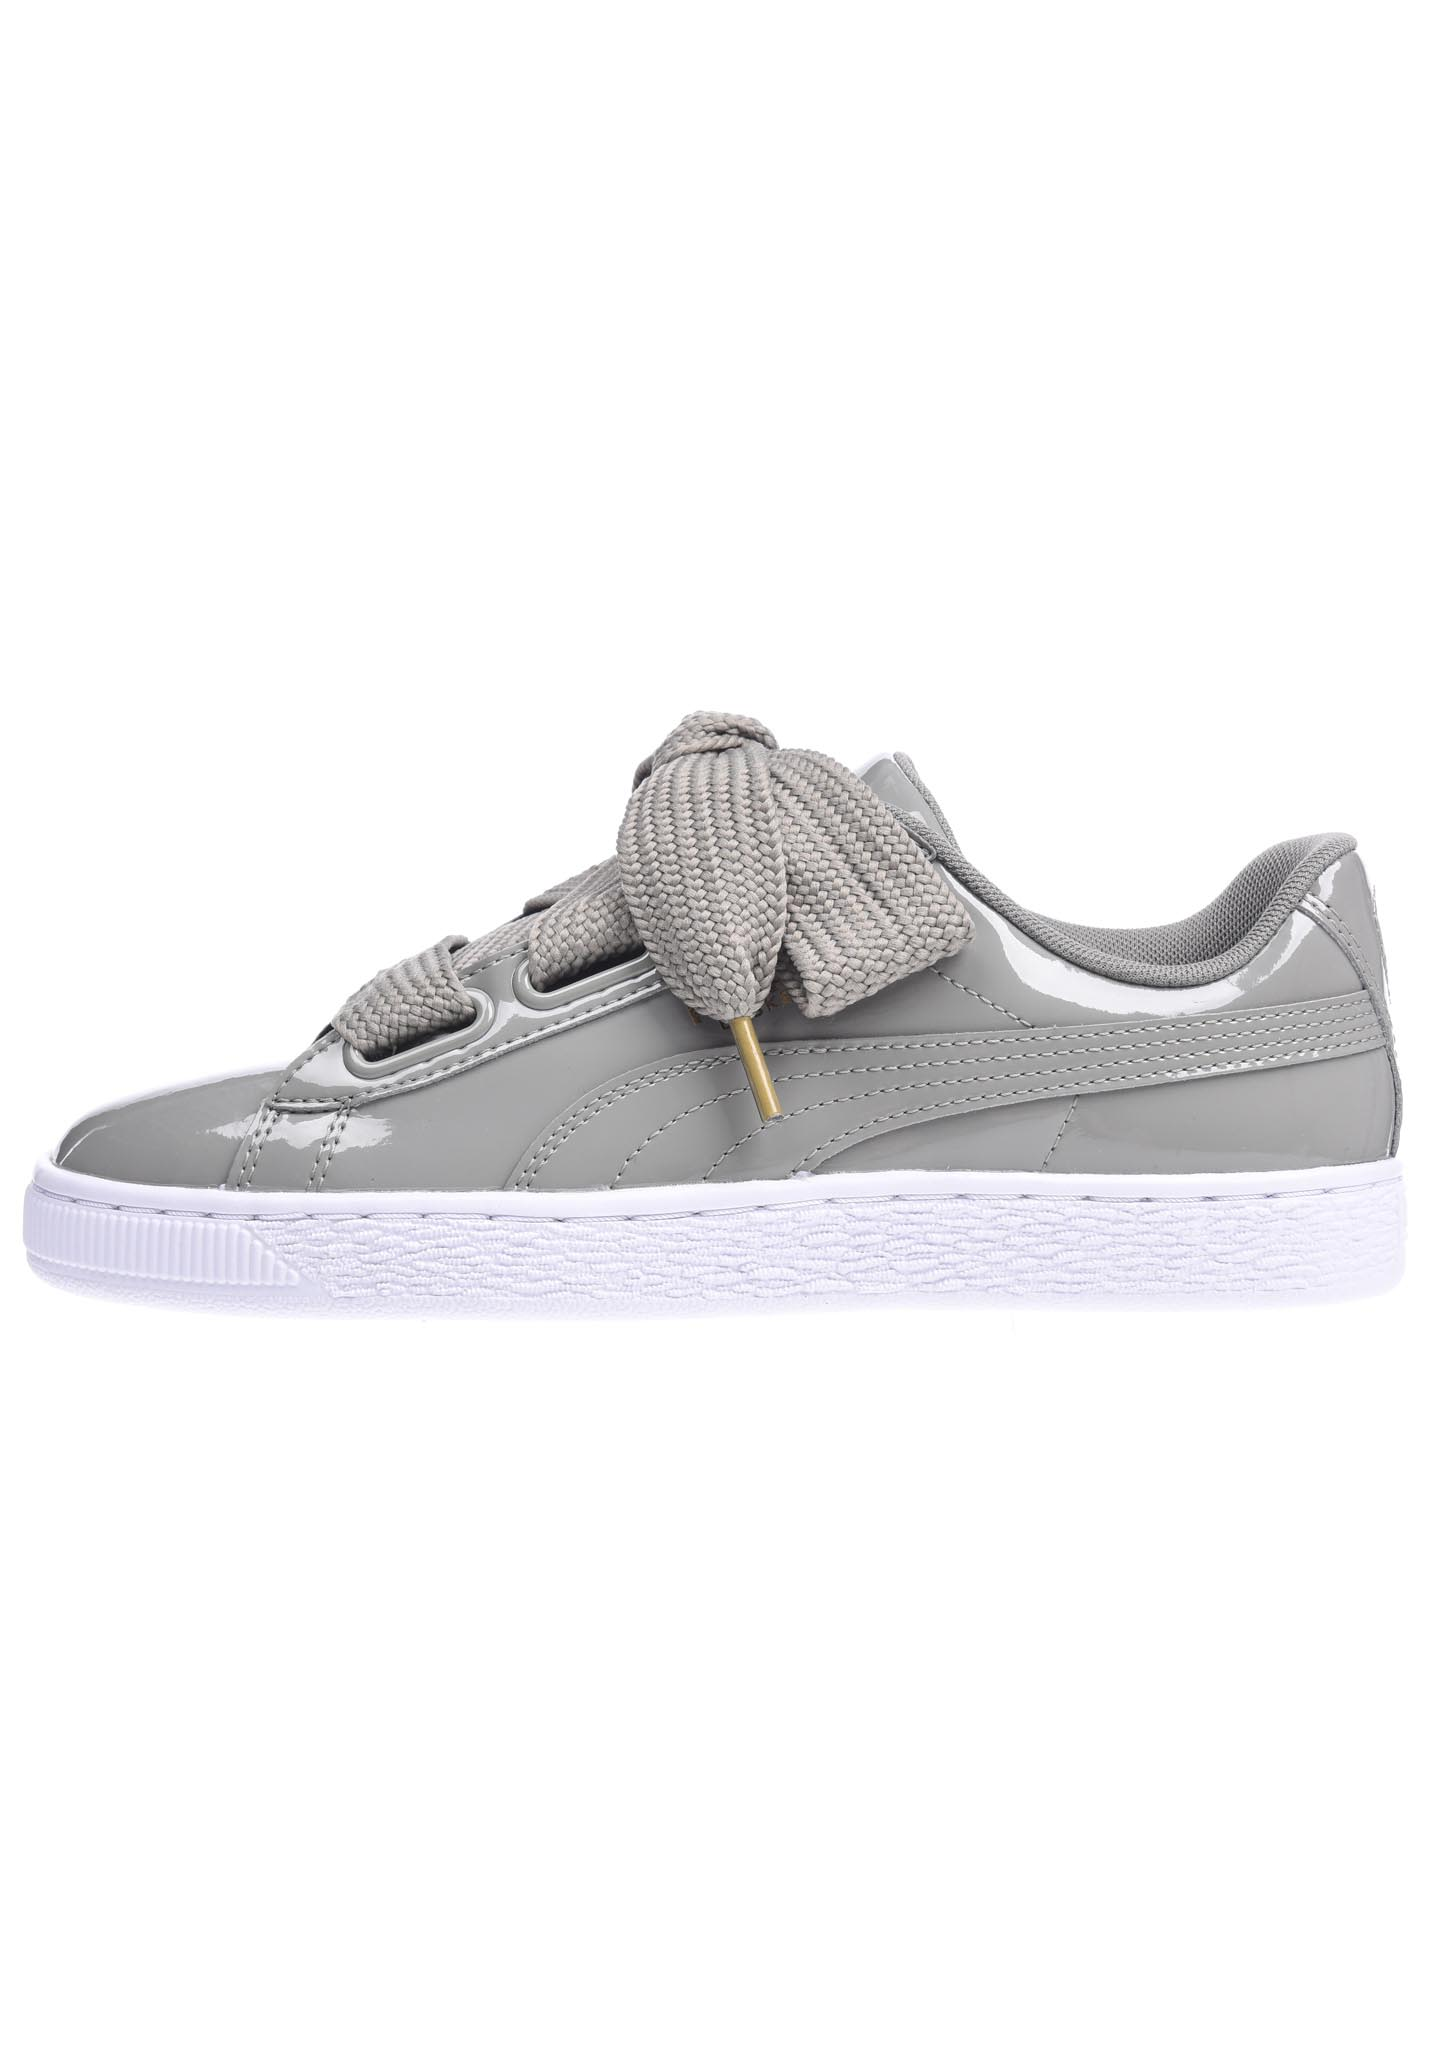 ac516fd481a Puma Basket Heart Patent - Sneakers for Women - Grey - Planet Sports